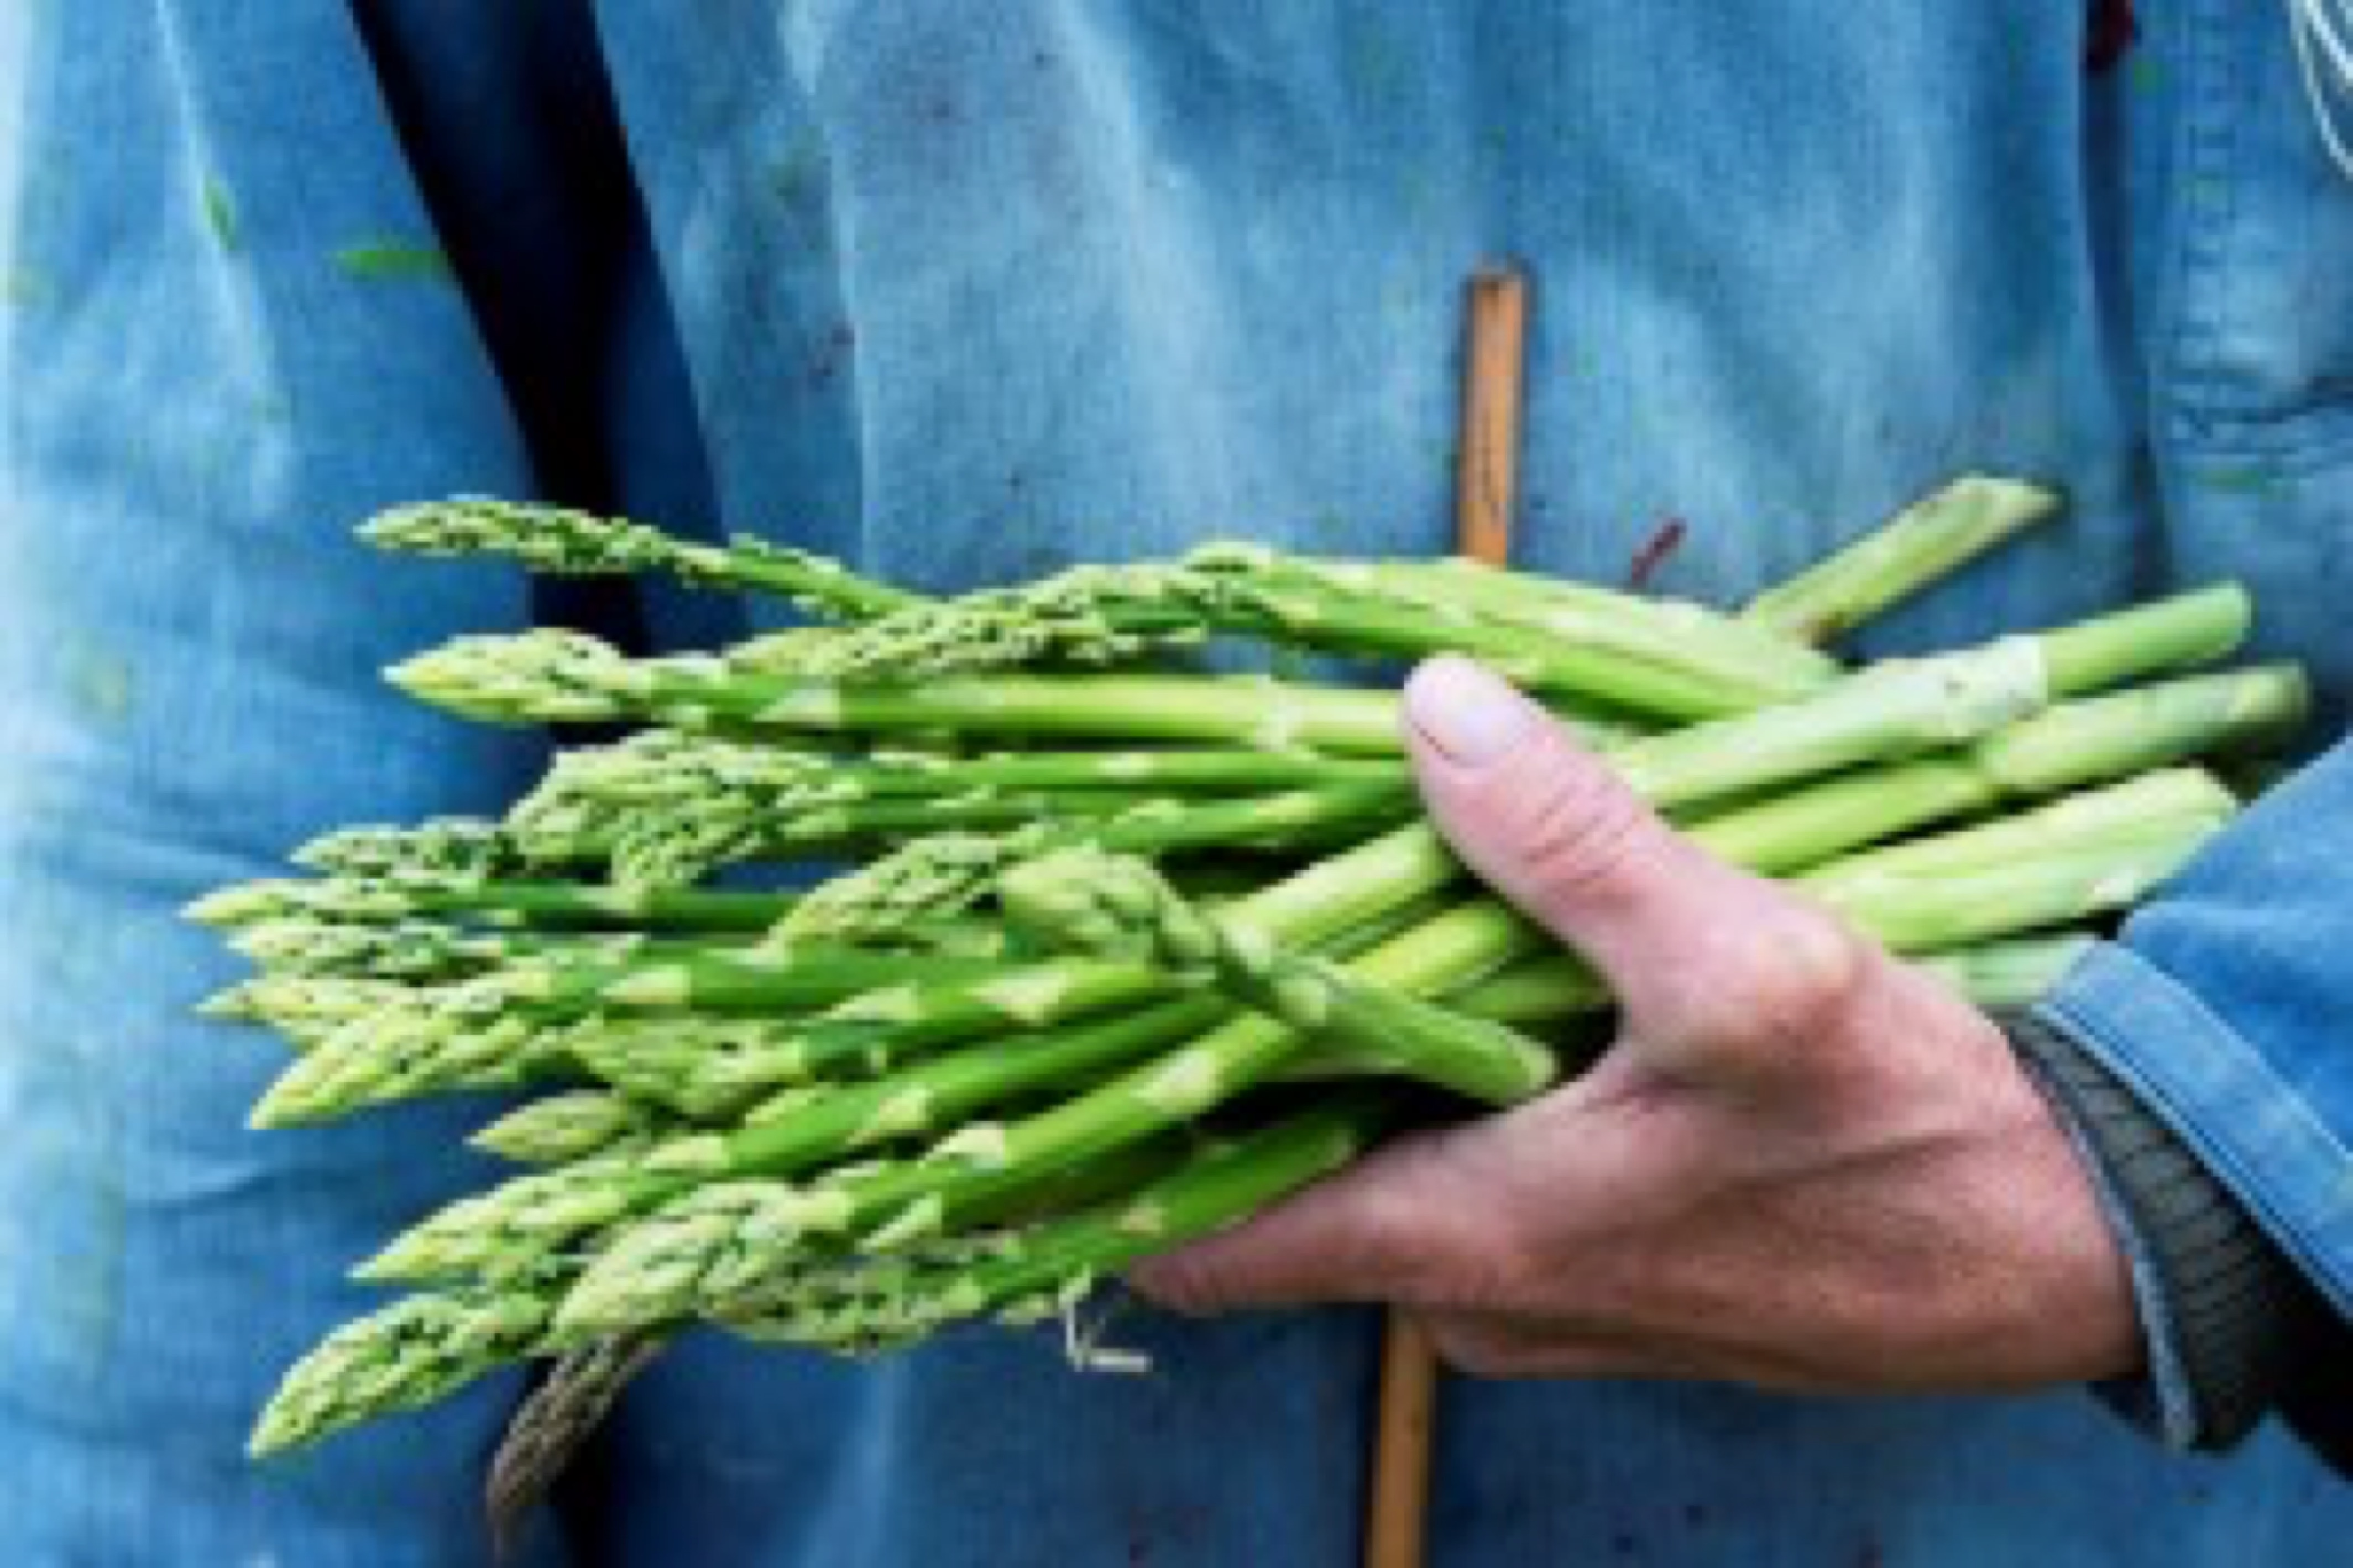 Photo of a farmer holding a freshly cut bunch of organic asparagus in his hand. The piece of cane is his hand shows the minimum length that the asparagus must reach before they are harvested. The focus is on the asparagus he is holding and he is wearing a faded blue tunic that contrasts nicely with the green of the asparagus and gives a nice area for copy space. Horizontal format.